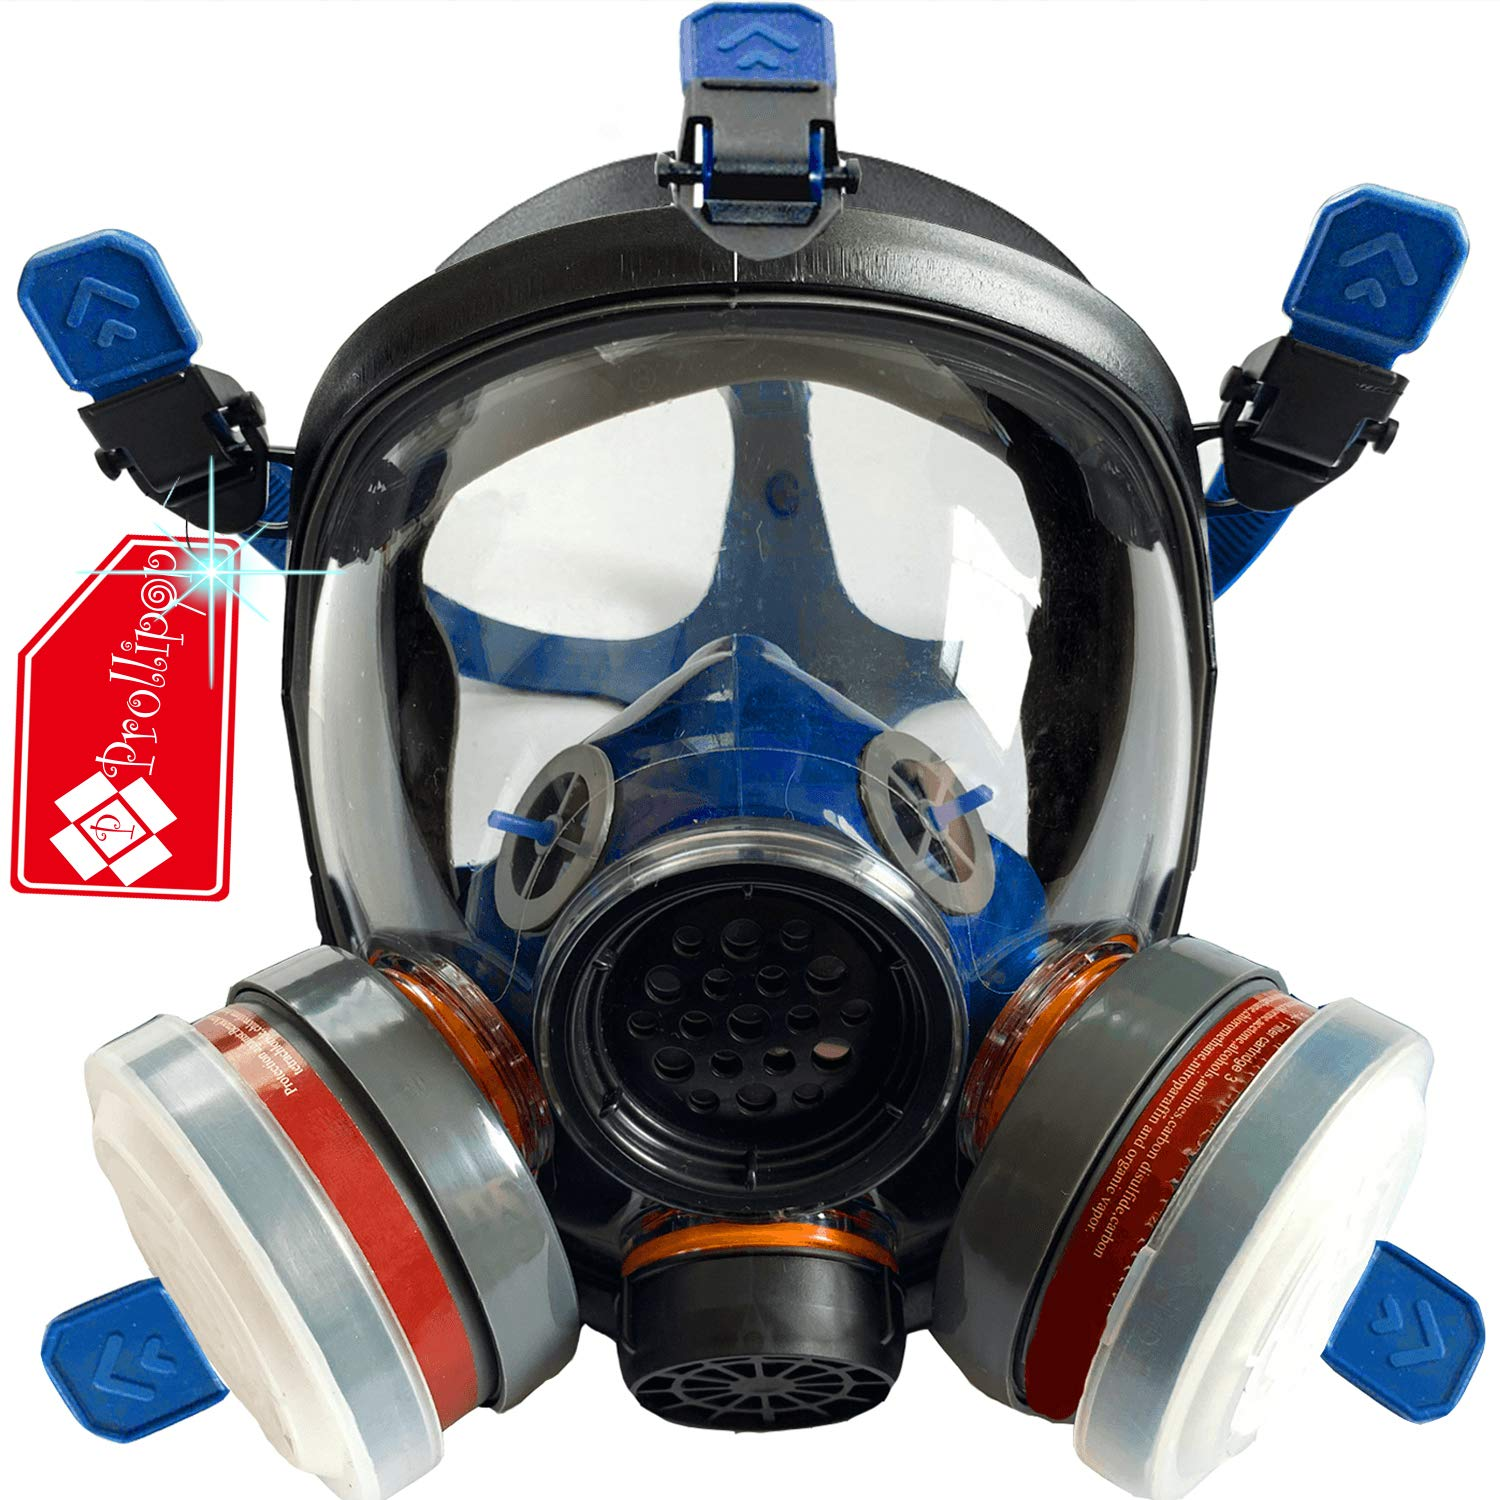 Full Face Organic Vapor Respirator - Bio Gas Respirator for Survival and Emergency - Double Activated Carbon Air Filter For Paint Spray Woodworking by Prollipop